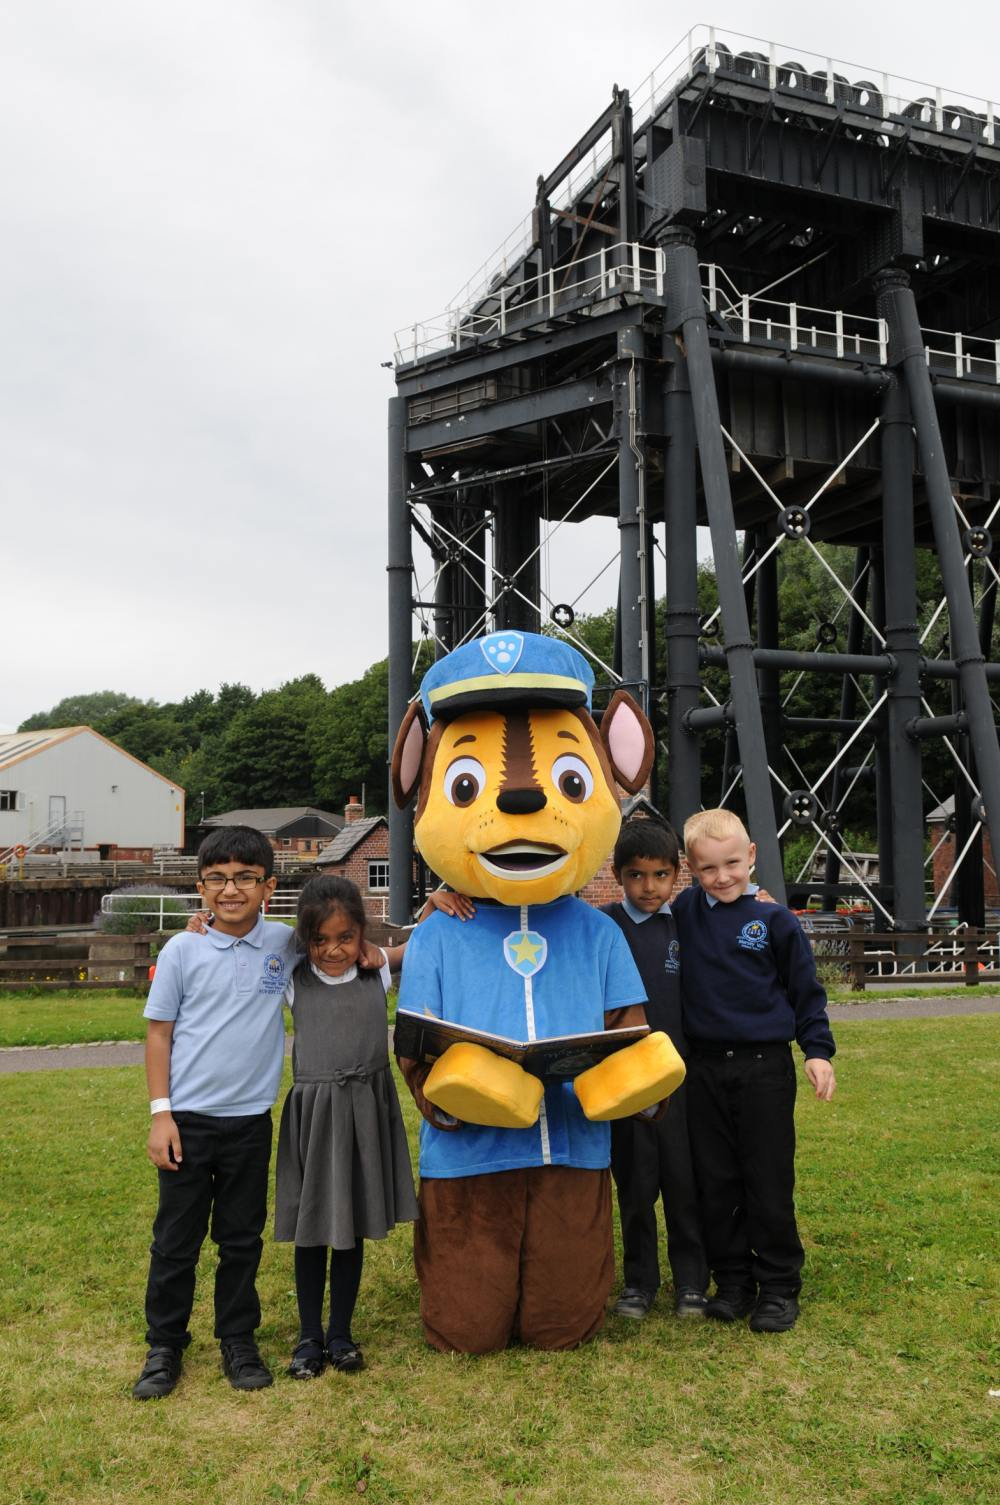 Story telling with Chase from Paw Patrol at the Anderton Boat Lift